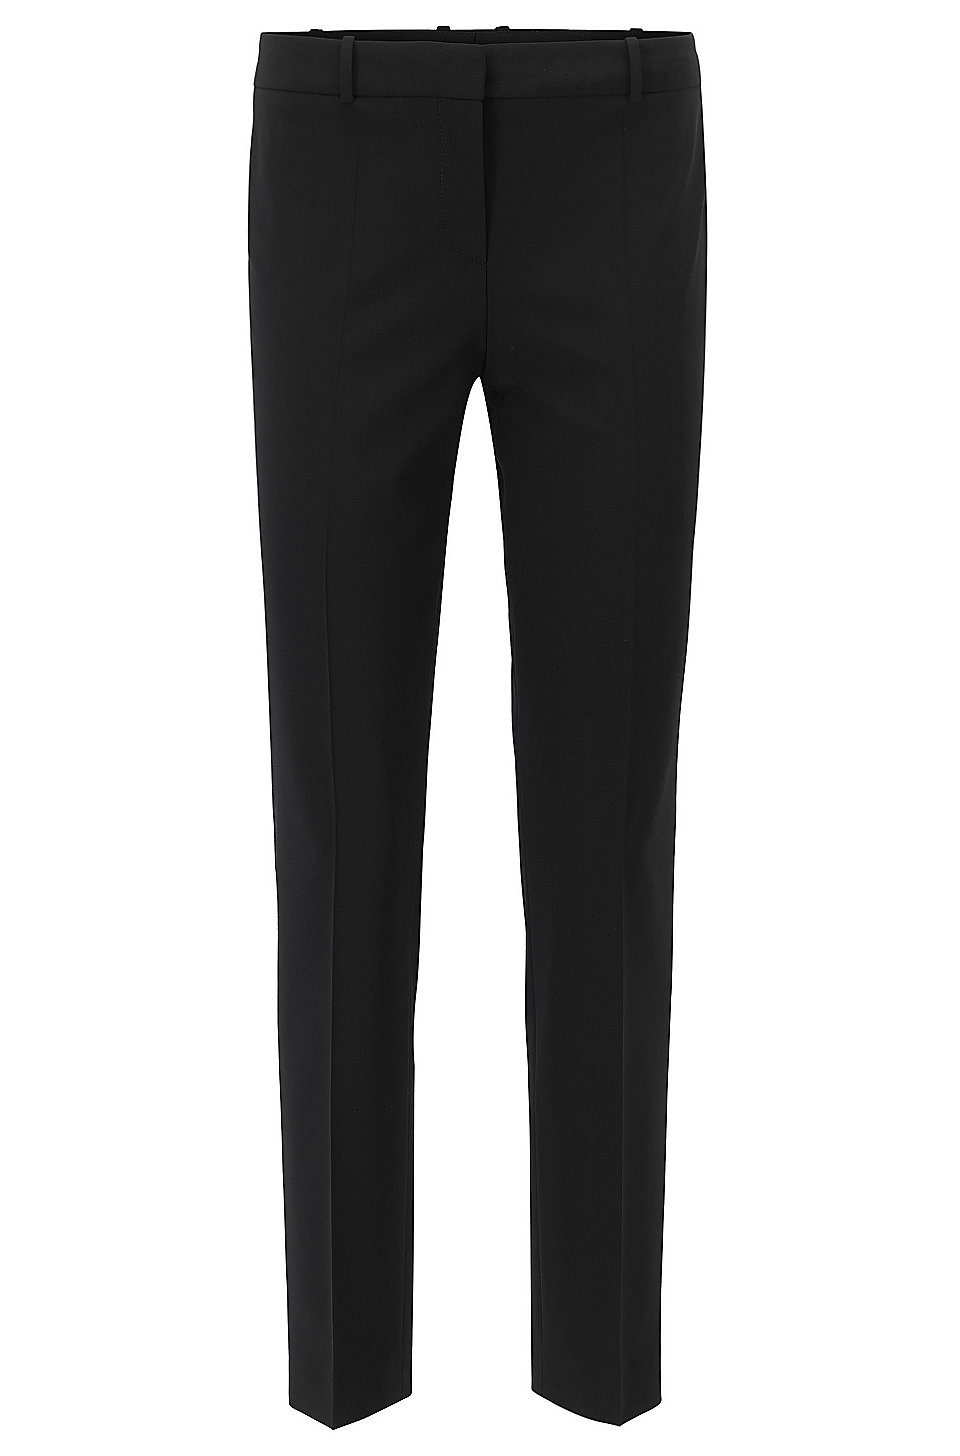 Pinstripe virgin wool trousers in a tapered fit HUGO BOSS